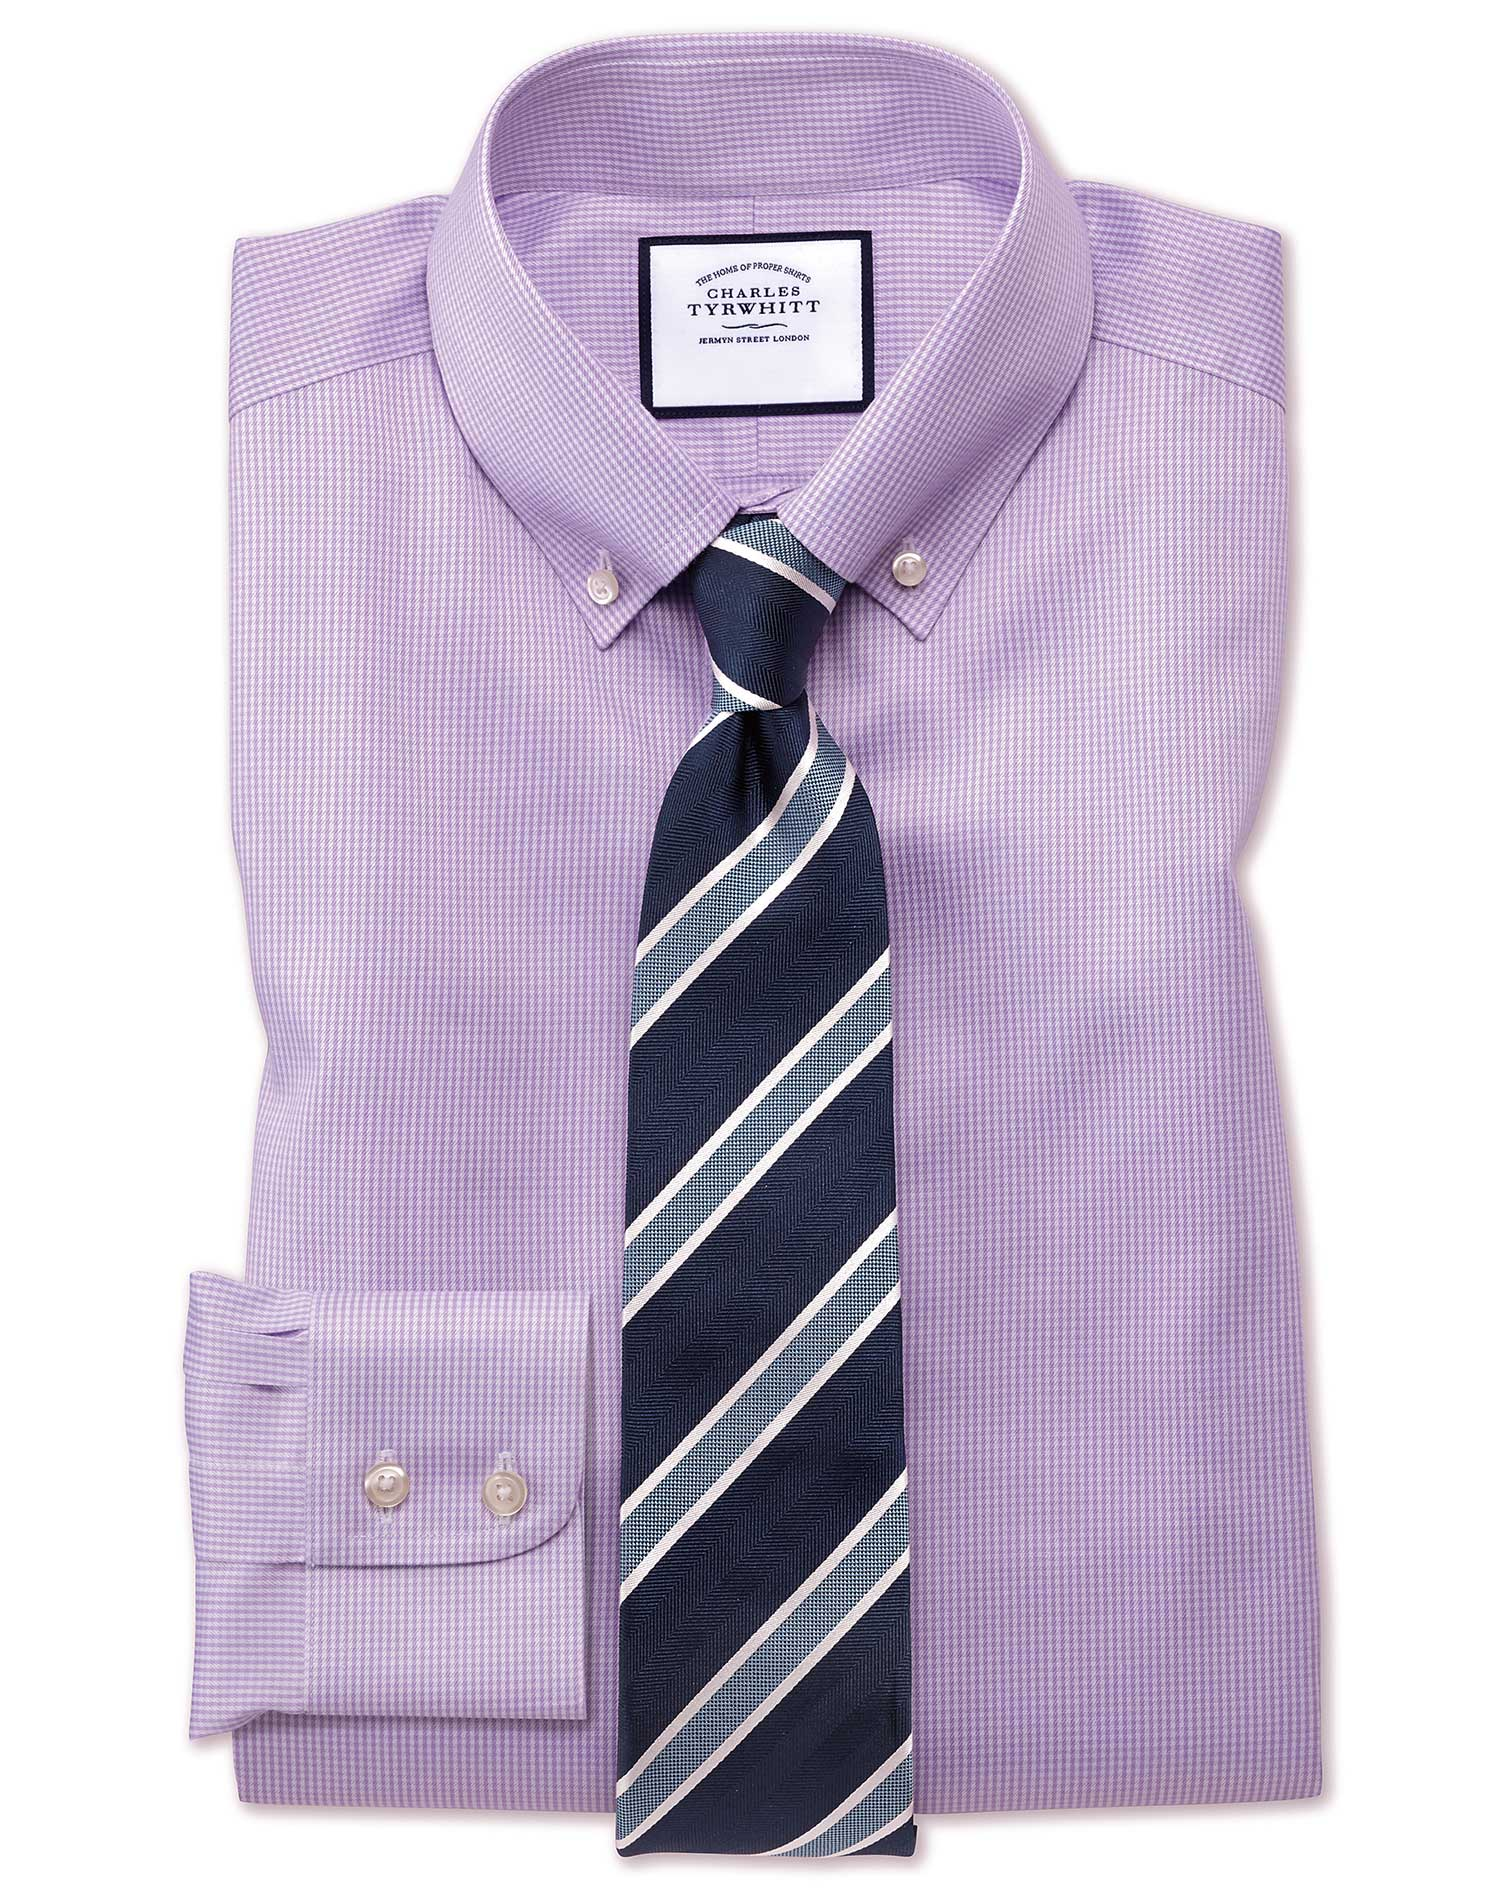 Extra Slim Fit Button-Down Non-Iron Twill Puppytooth Lilac Cotton Formal Shirt Single Cuff Size 15/3